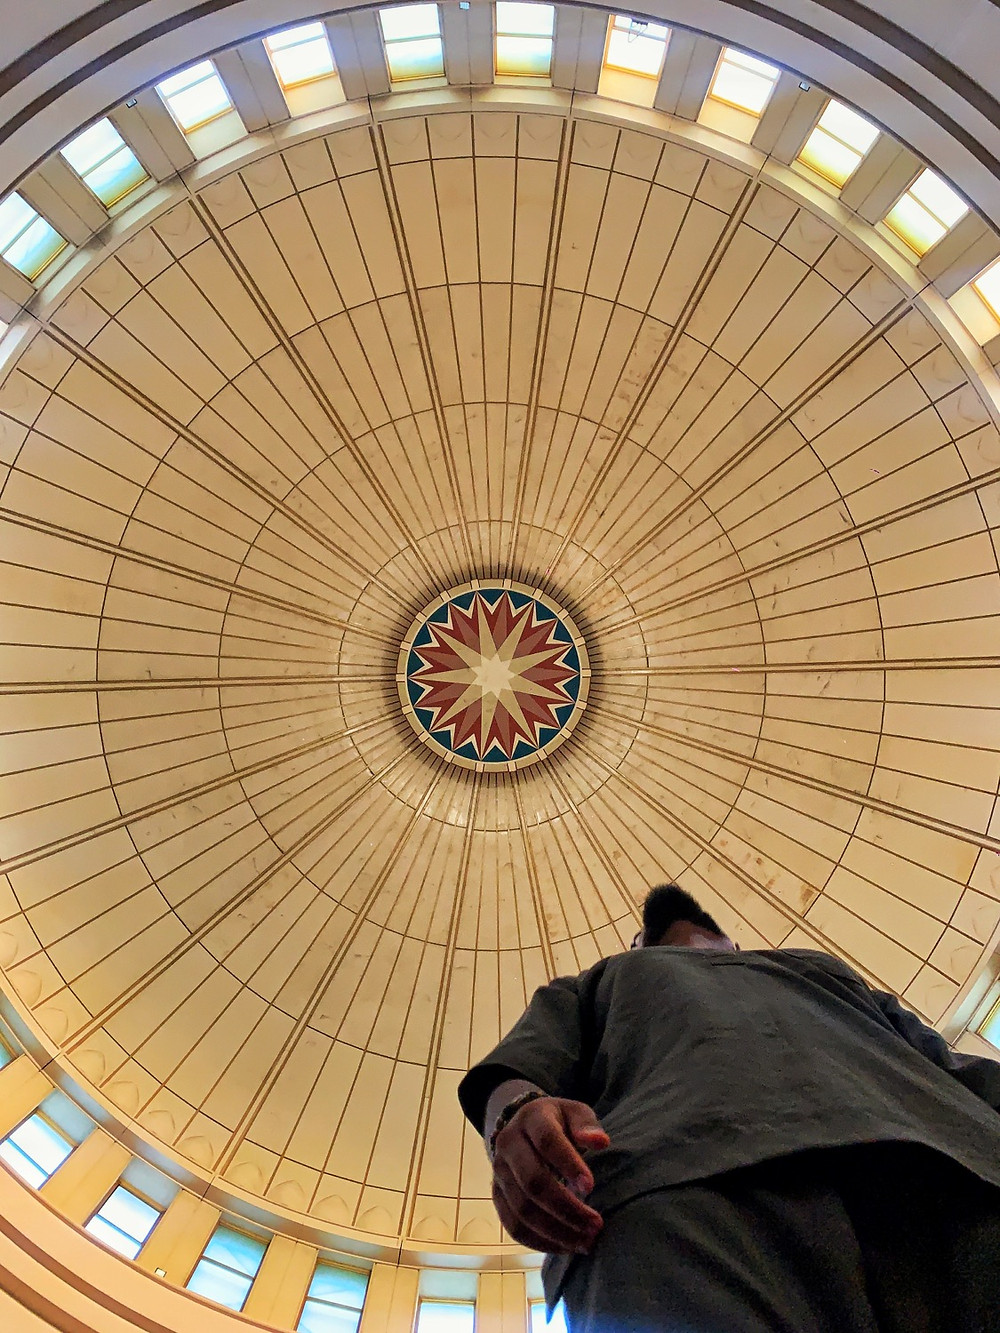 Compass design of the abuja national mosque ceiling